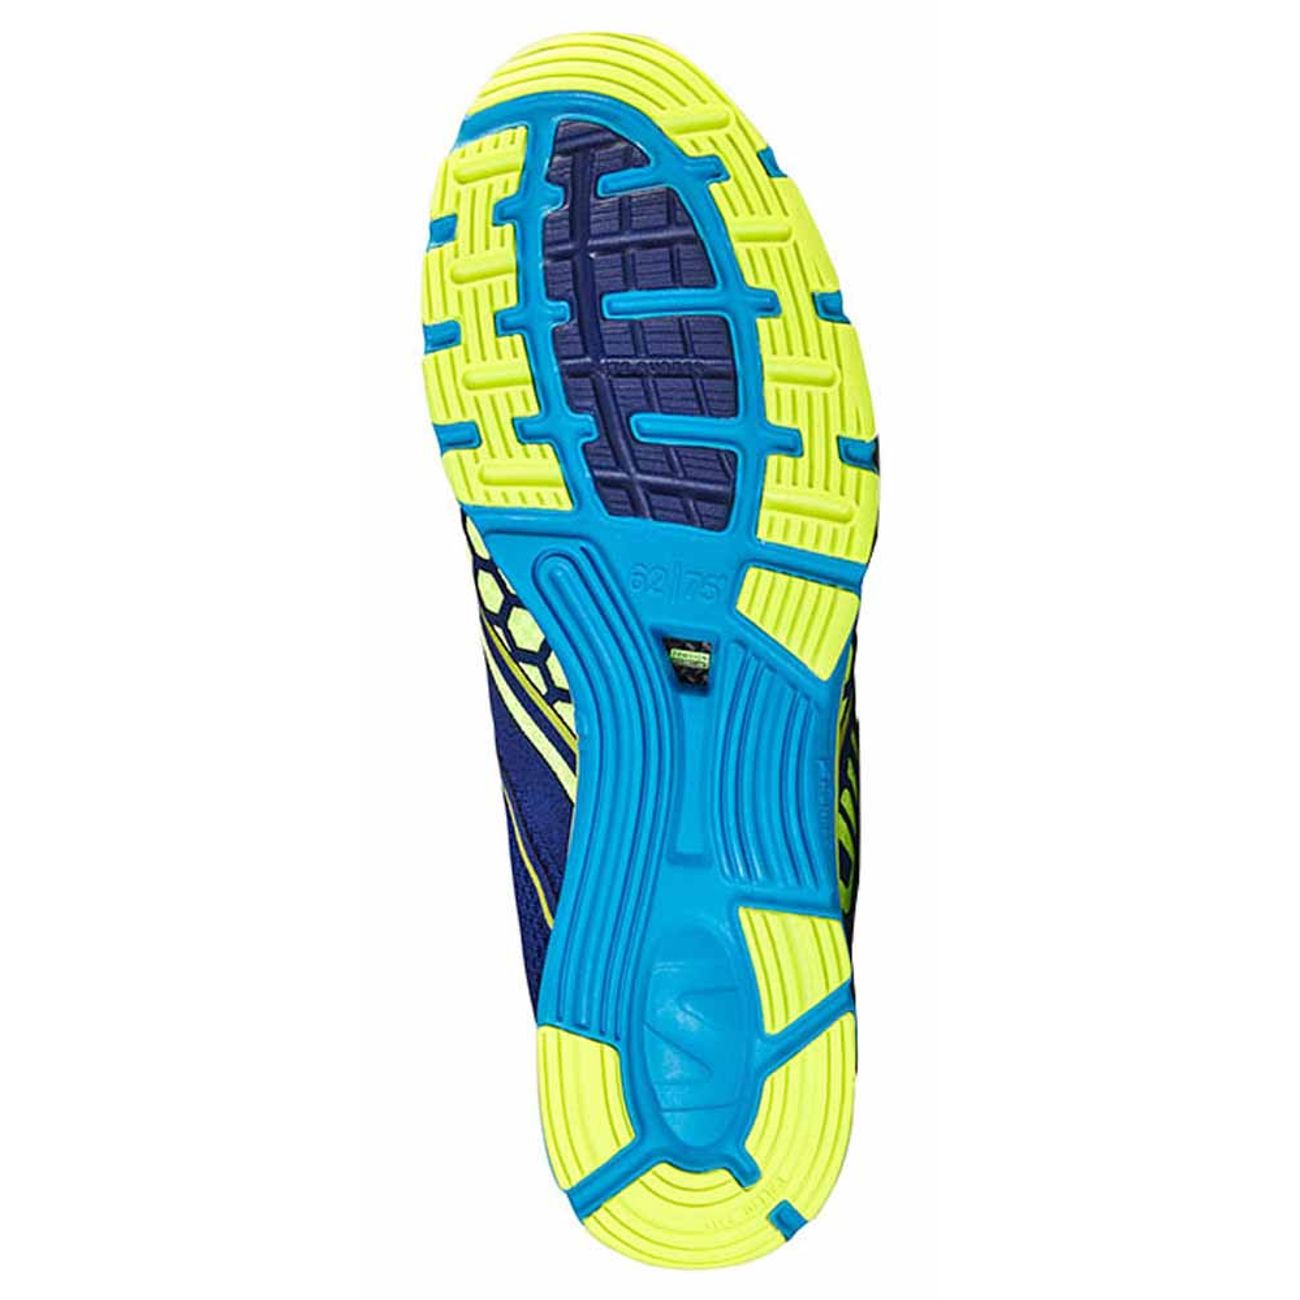 Race3 Homme Running Salming Chaussures Running Y76byvIfg